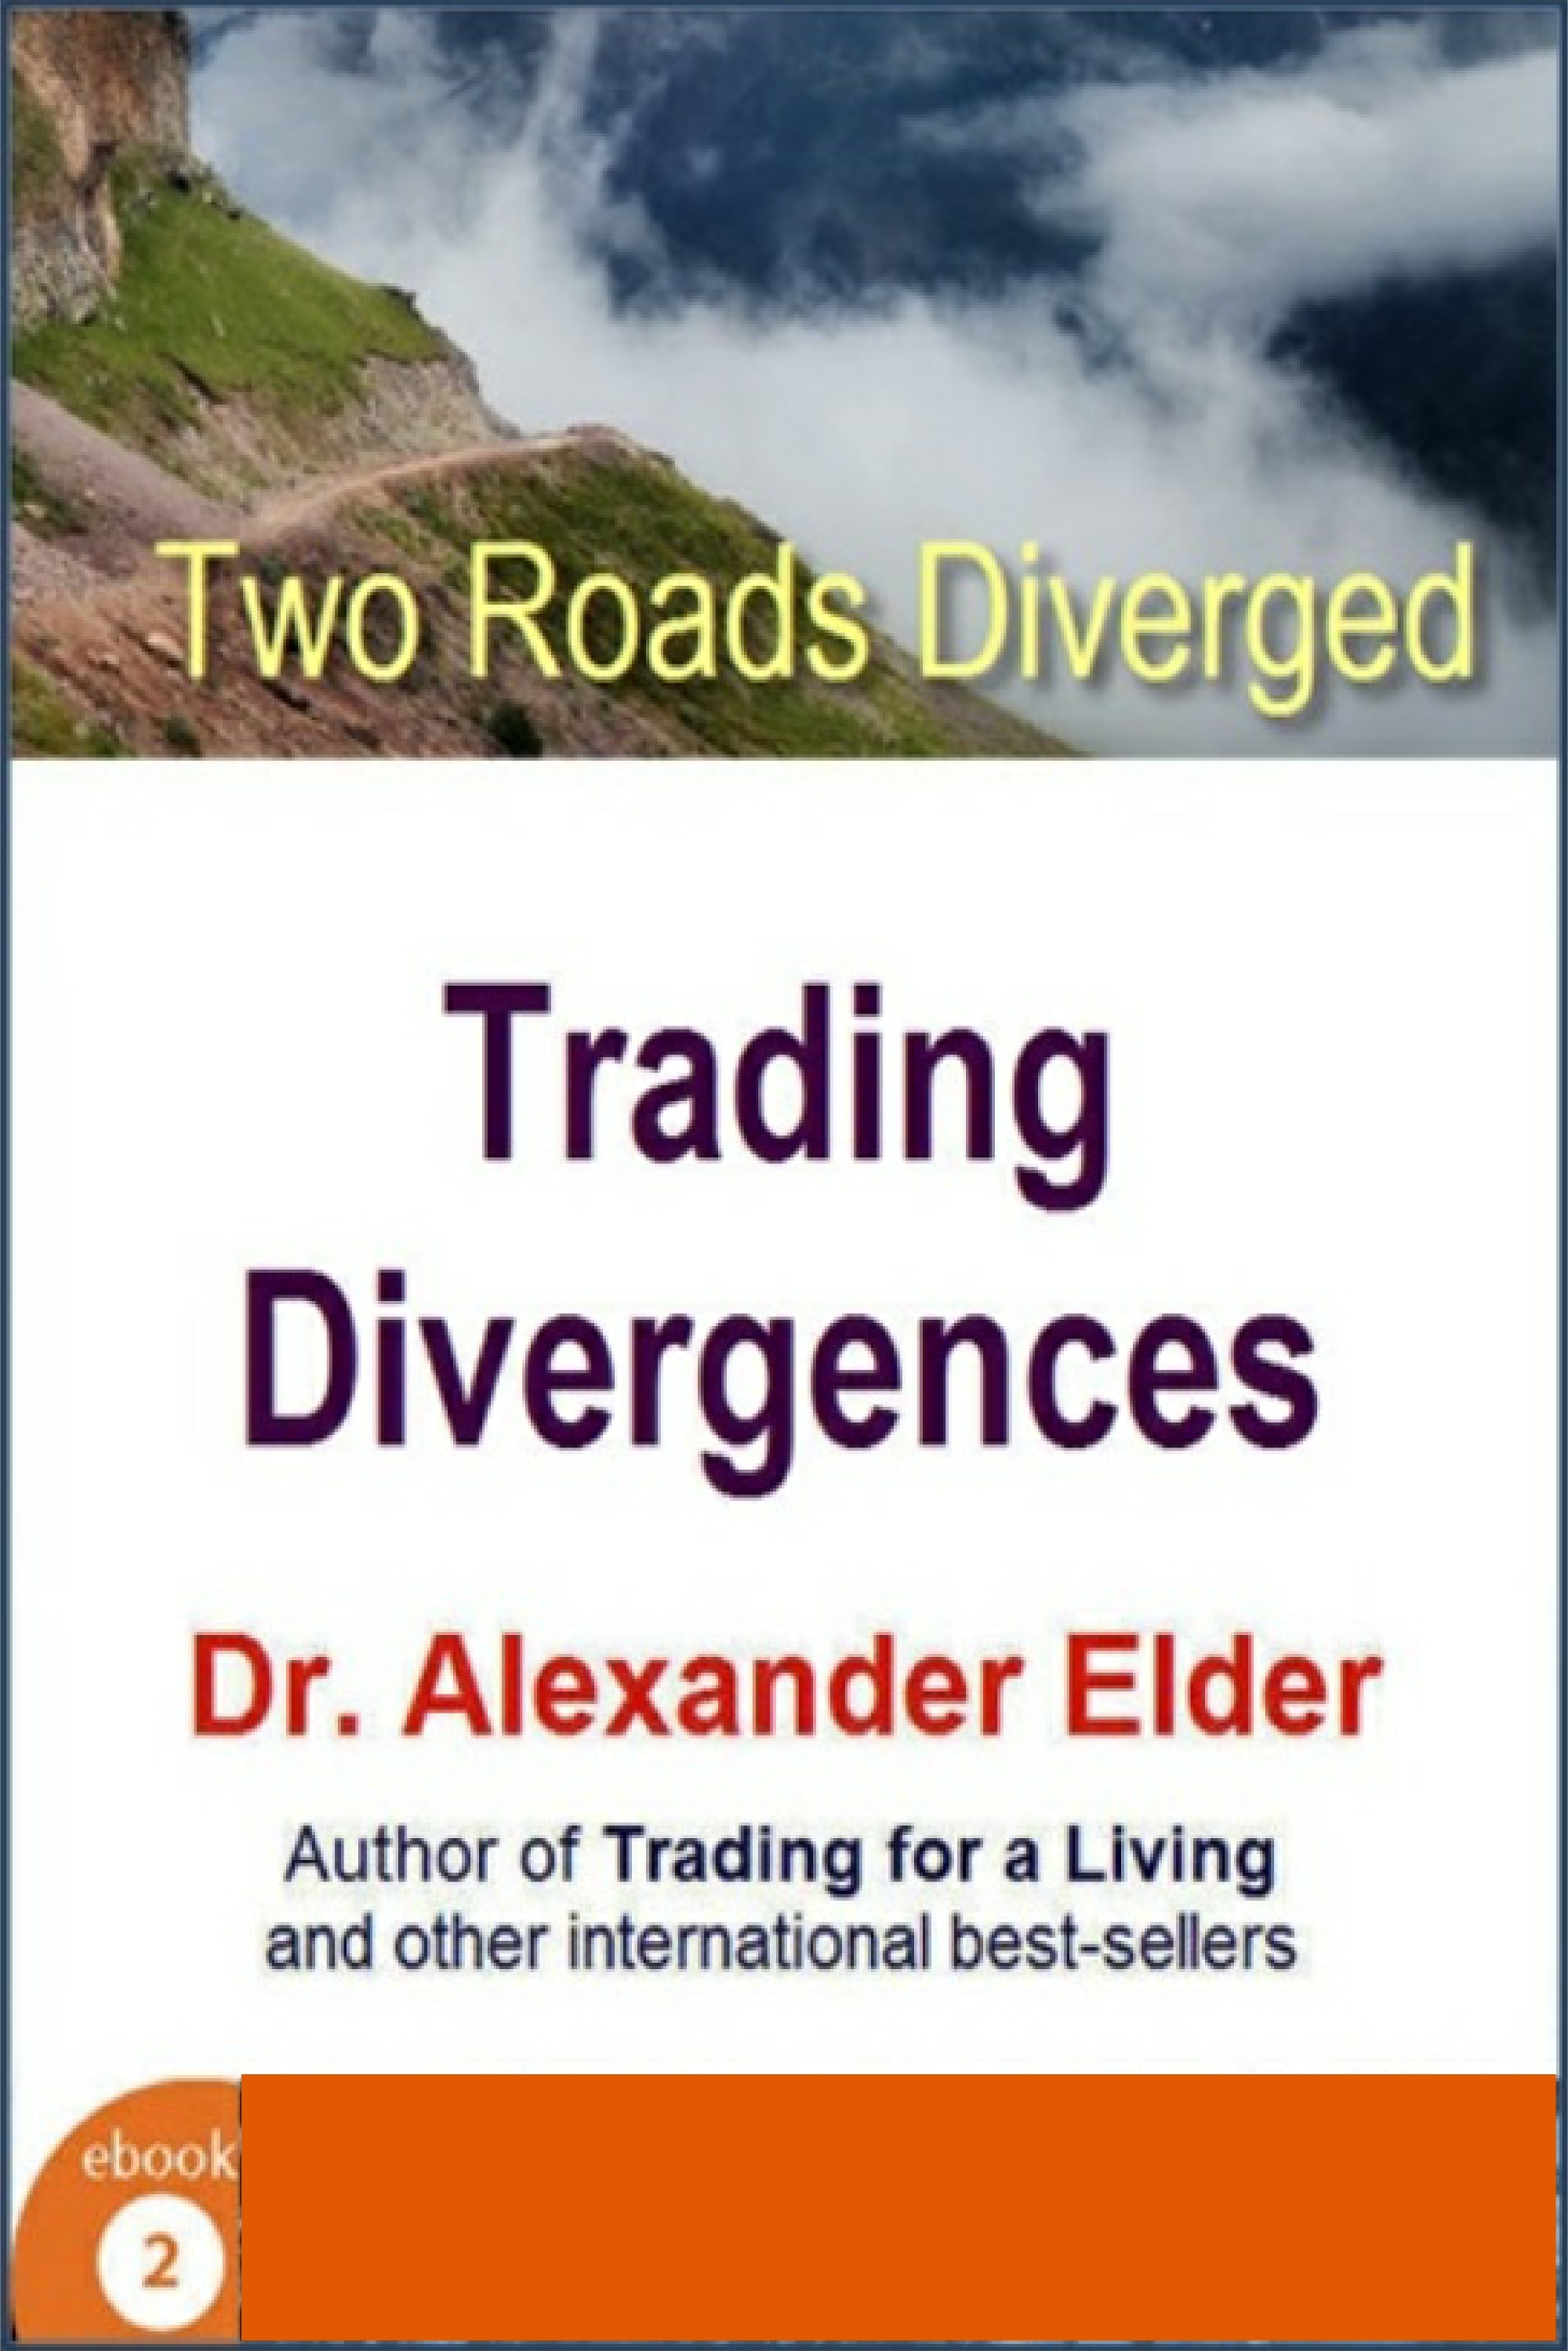 Two Roads Diverged: Trading Divergences